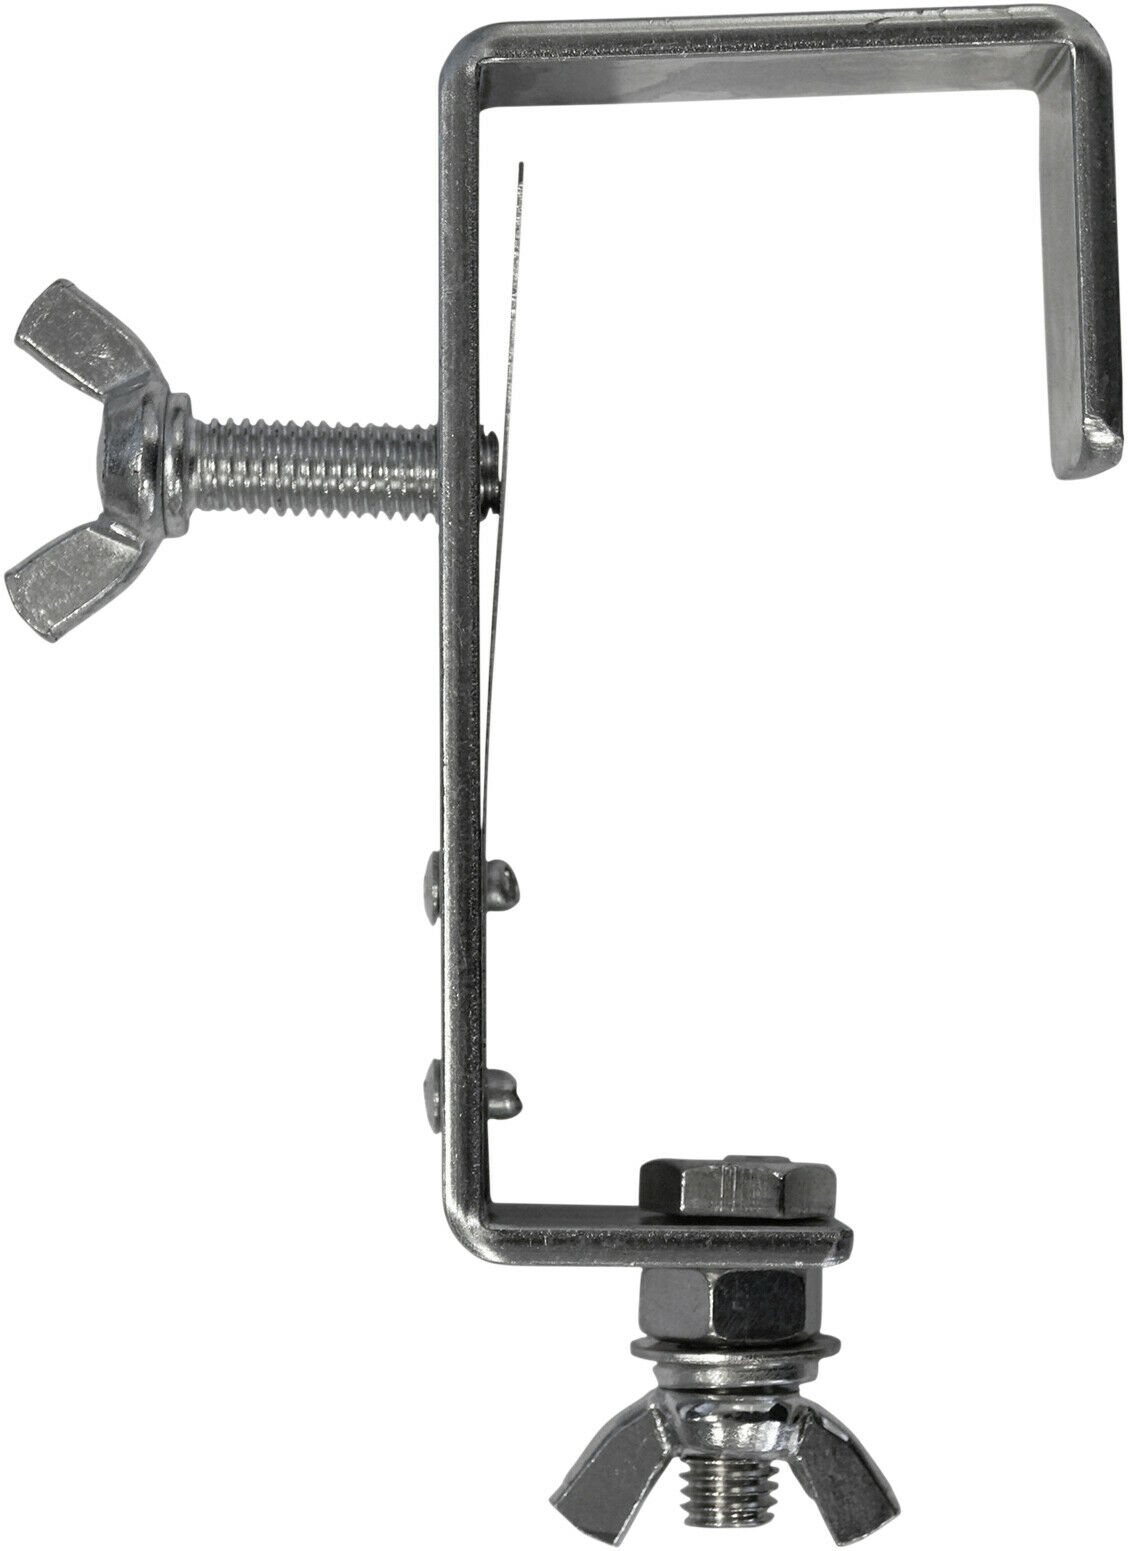 FX Lab Heavy Duty 50 mm G Clamp With Tube Protection Plate x 2